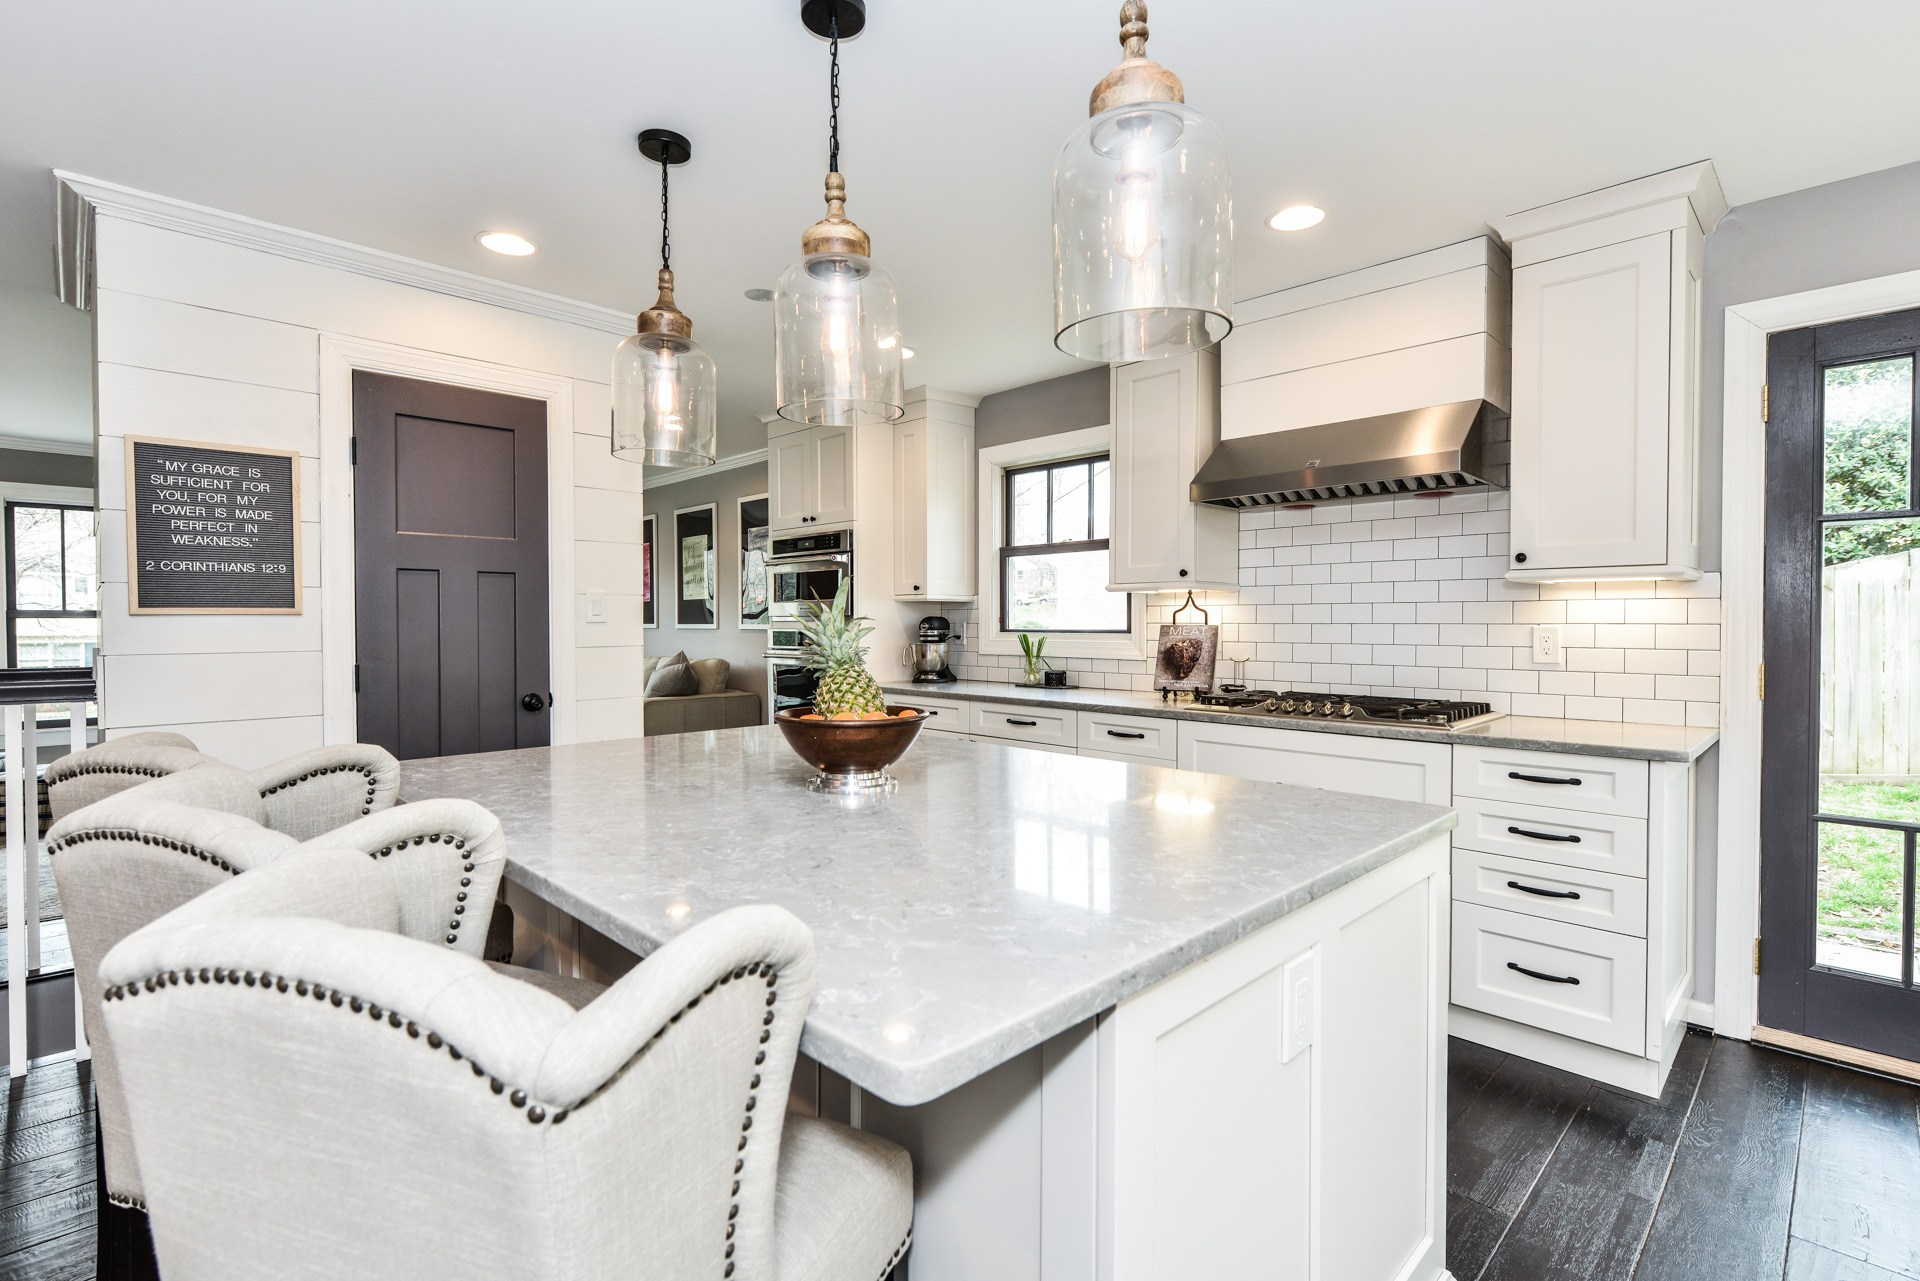 5 Most Popular Home Renovation Projects in Virginia   Home Remodeling Ideas